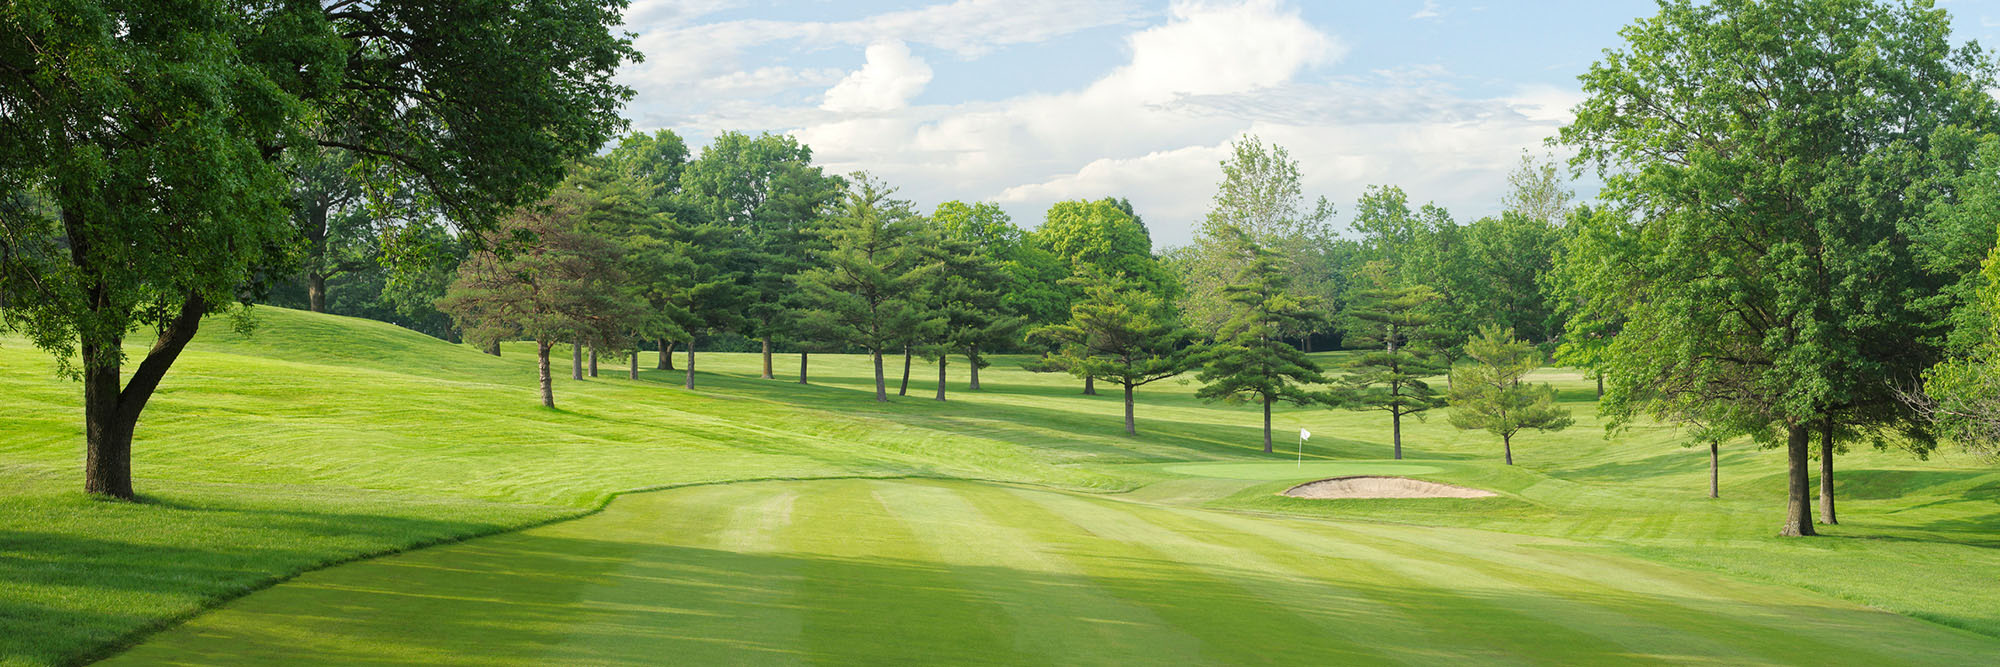 Golf Course Image - Oakwood Country Club No. 18